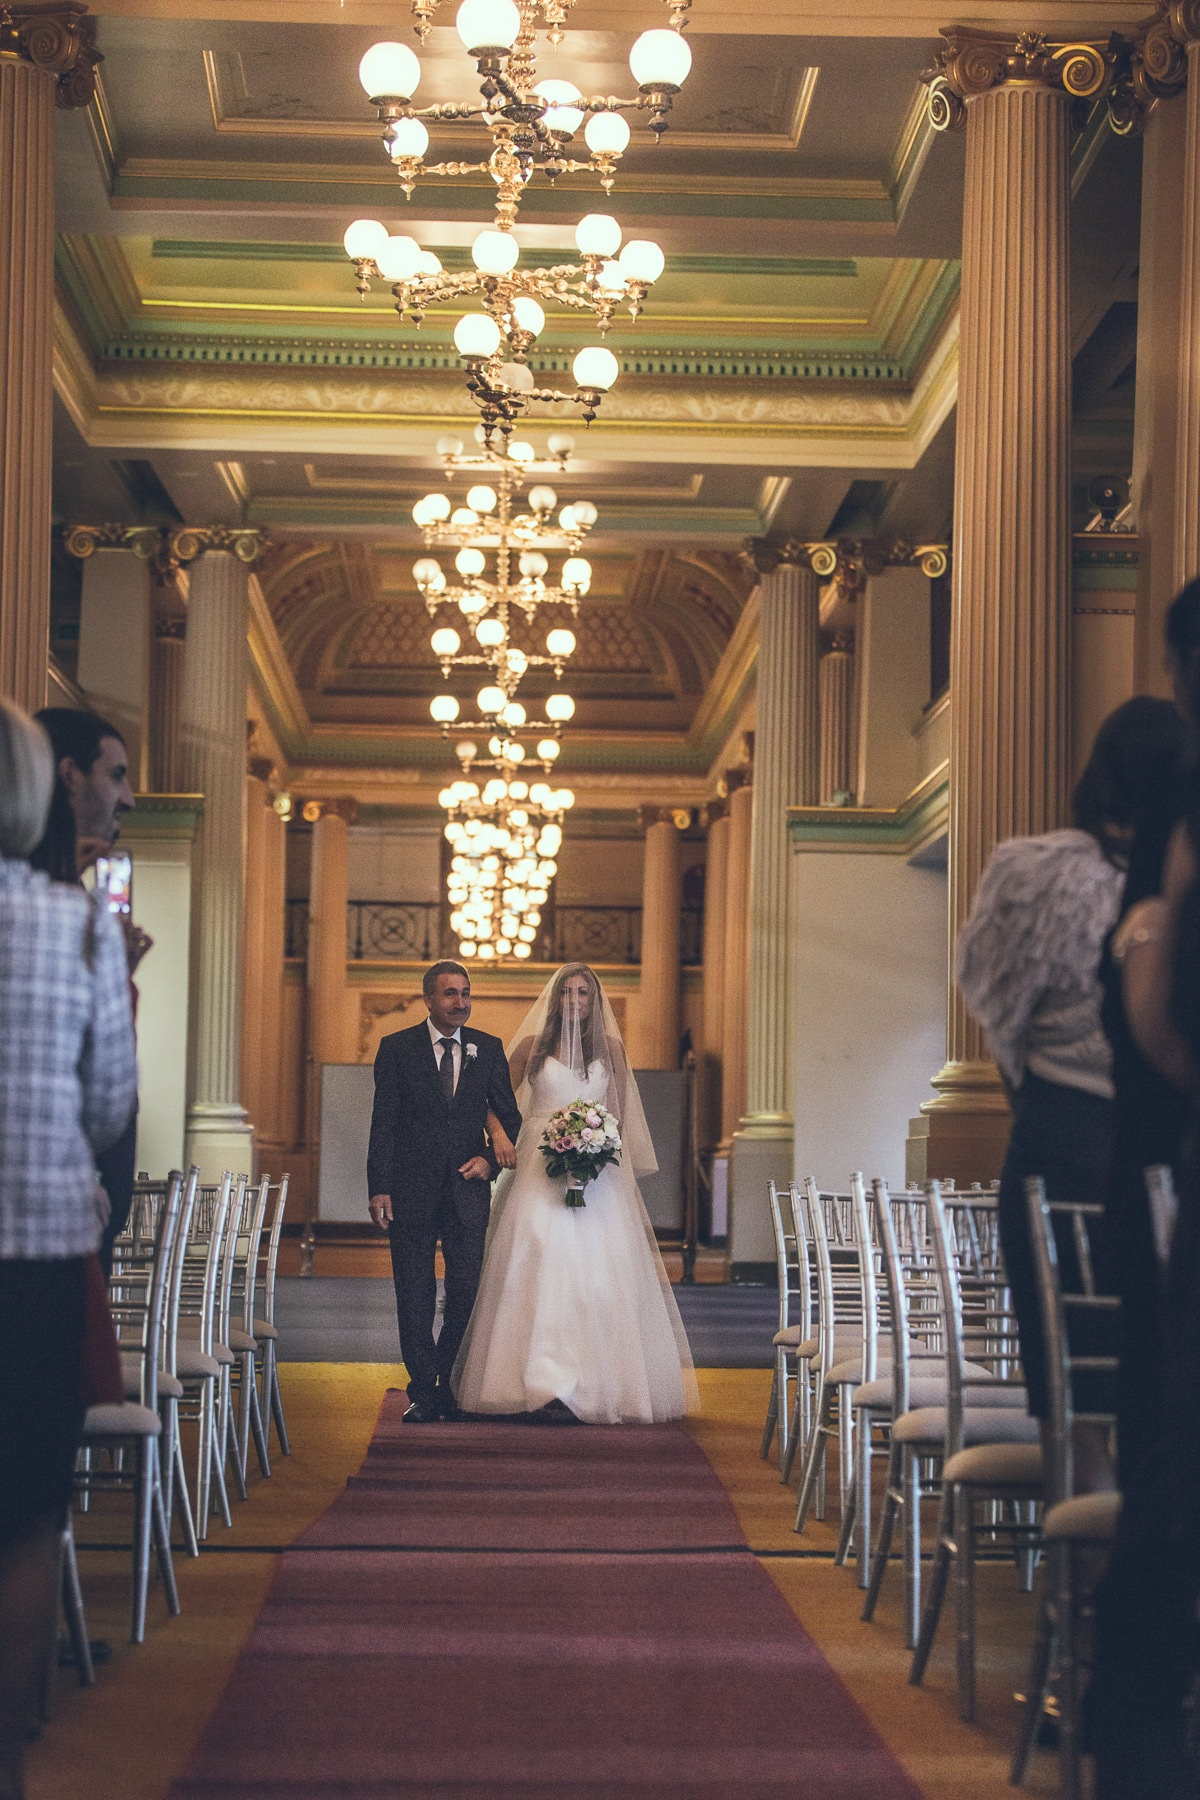 down the aisle - a luxury wedding in a grand ballroom in melbourne - wedding photos